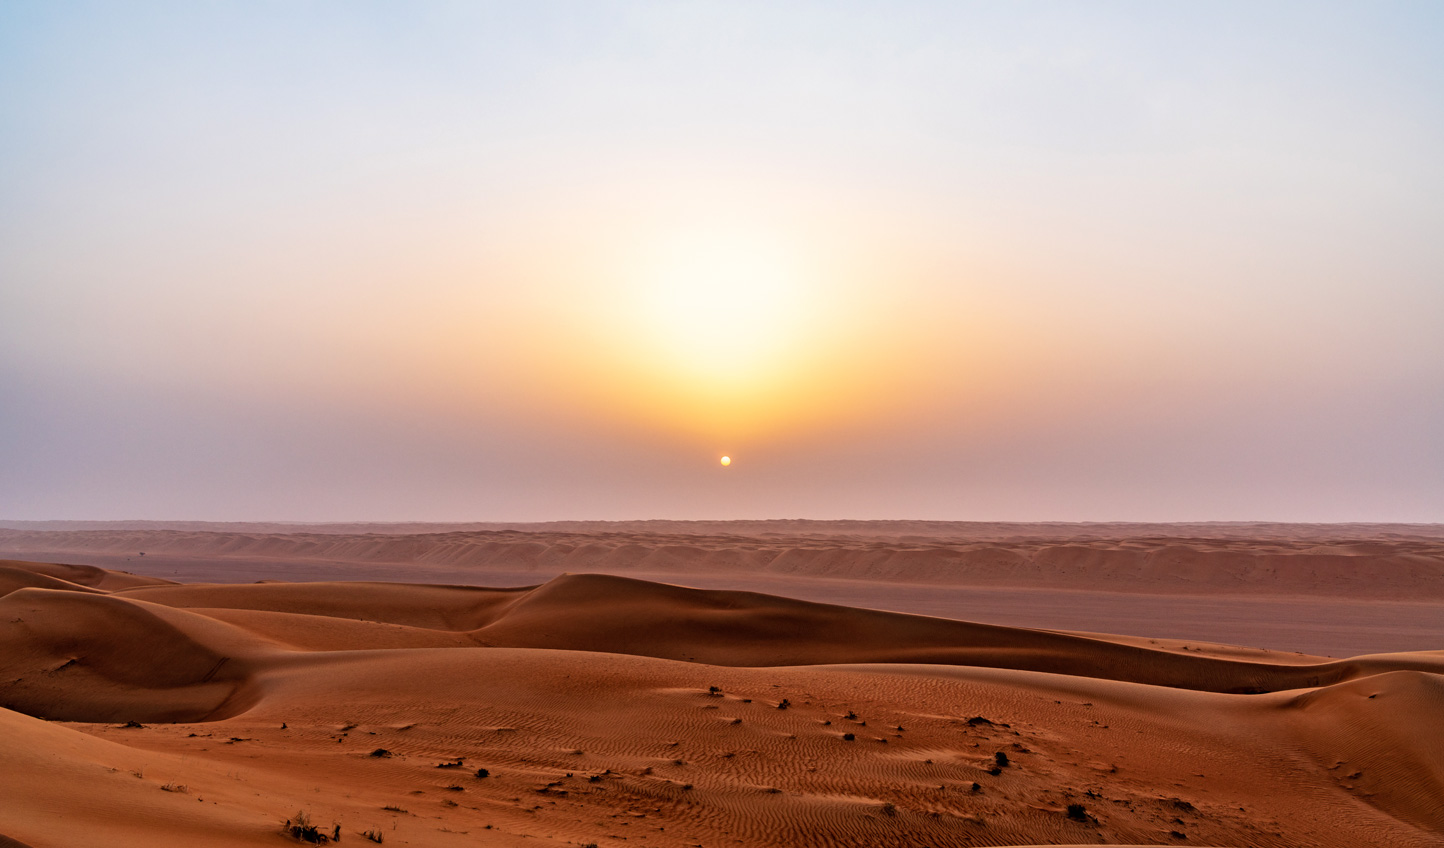 Watch the sun rise up to light up the sands and breathe warmth into the air